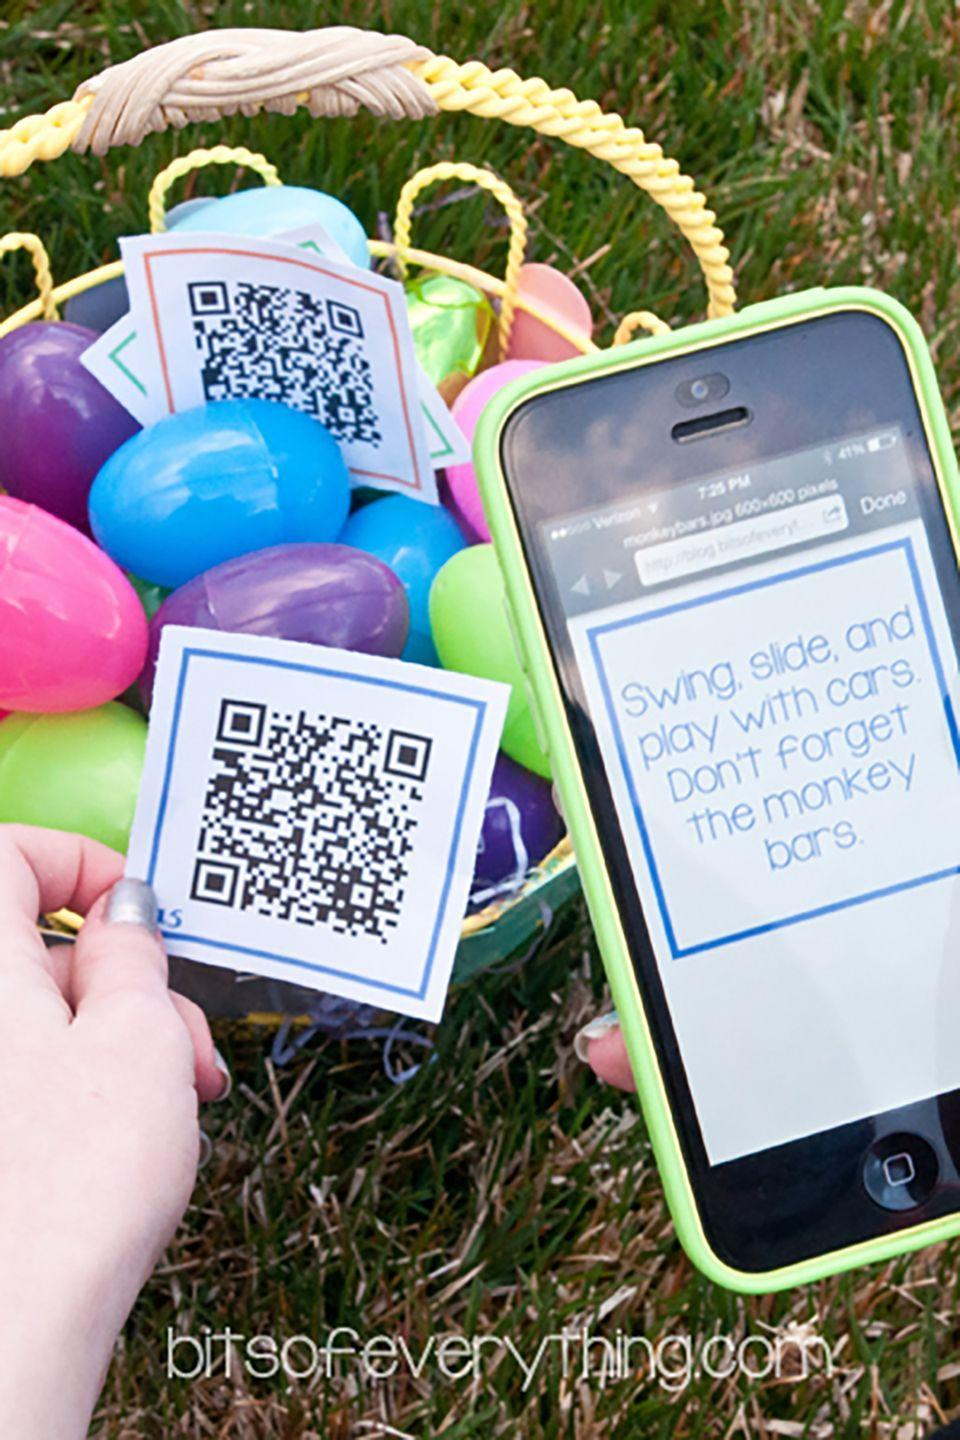 """<p>Here's an easy way to get teens with cell phones interested in egg hunting: Simply print out and attach QR codes, which gives them a clue to the next egg's location.</p><p><strong>Get the tutorial at <a href=""""http://blog.bitsofeverything.com/2014/04/smart-phone-easter-egg-hunt-older-kids.html/2"""" rel=""""nofollow noopener"""" target=""""_blank"""" data-ylk=""""slk:Bits Of Everything"""" class=""""link rapid-noclick-resp"""">Bits Of Everything</a>. </strong></p><p><a class=""""link rapid-noclick-resp"""" href=""""https://www.amazon.com/Plastic-Easter-order-Assorted-Colors/dp/B00362OPP0/ref=sr_1_2?dchild=1&keywords=easter+eggs&qid=1614113632&sr=8-2&tag=syn-yahoo-20&ascsubtag=%5Bartid%7C10050.g.4083%5Bsrc%7Cyahoo-us"""" rel=""""nofollow noopener"""" target=""""_blank"""" data-ylk=""""slk:SHOP EASTER EGGS"""">SHOP EASTER EGGS </a></p>"""